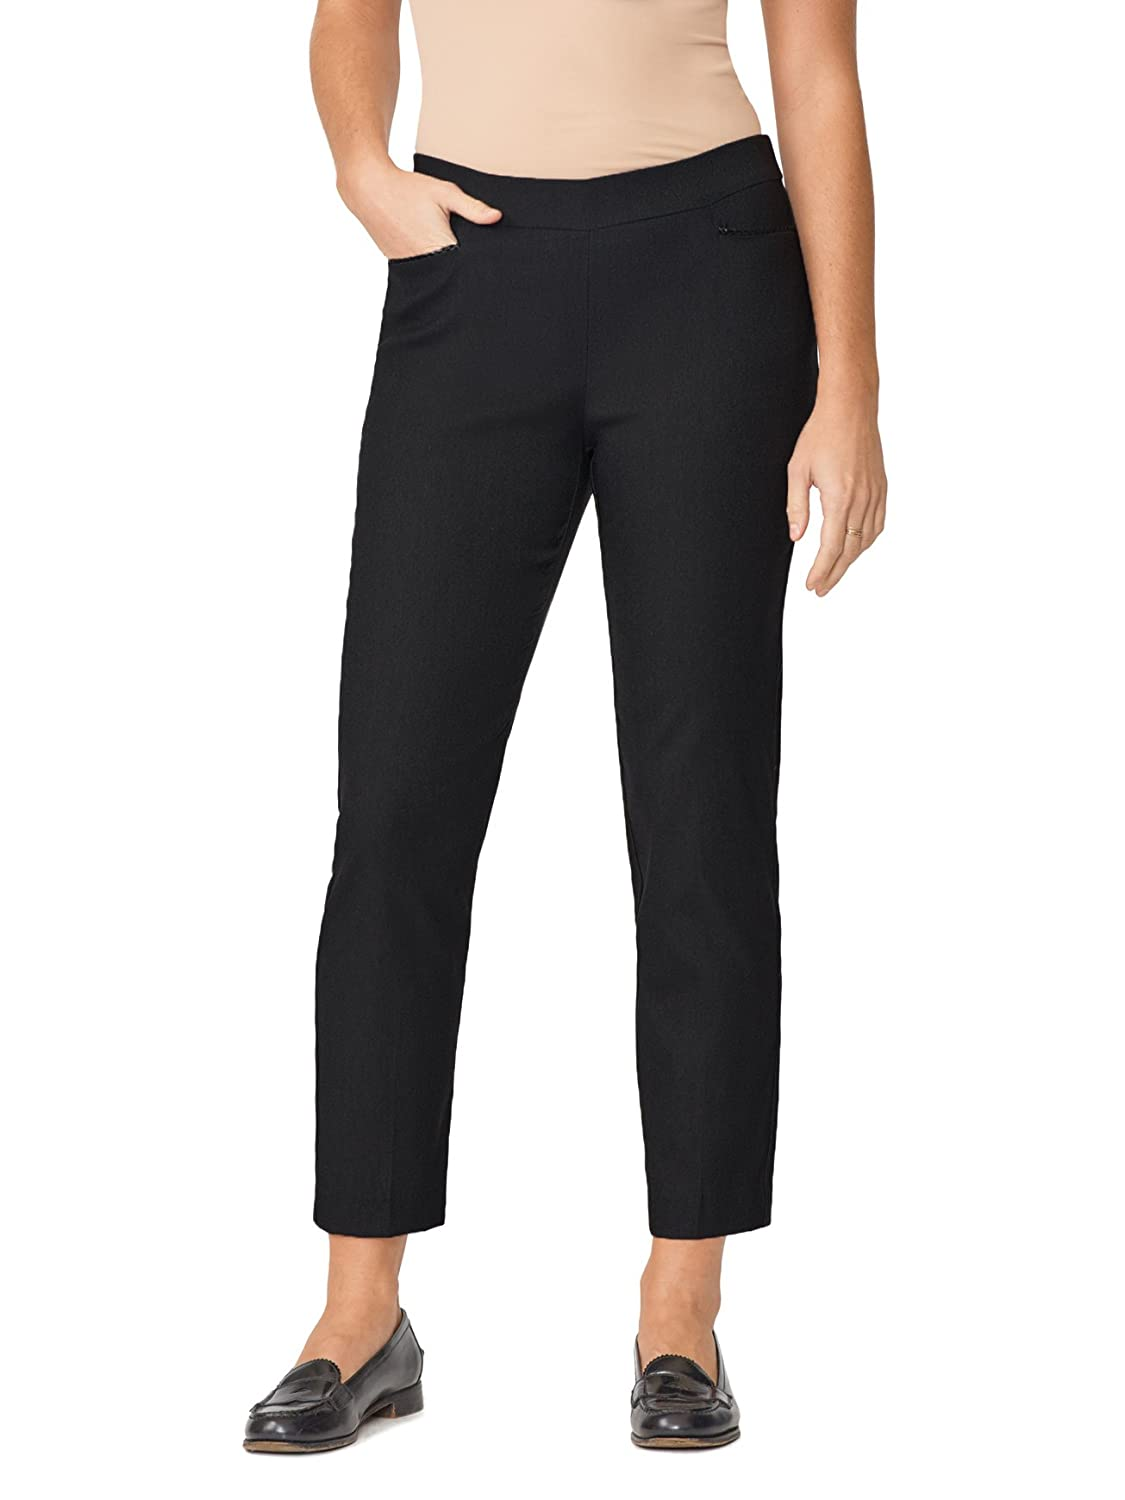 89th&Madison Woven Leather Trim Tapered Ankle Pants